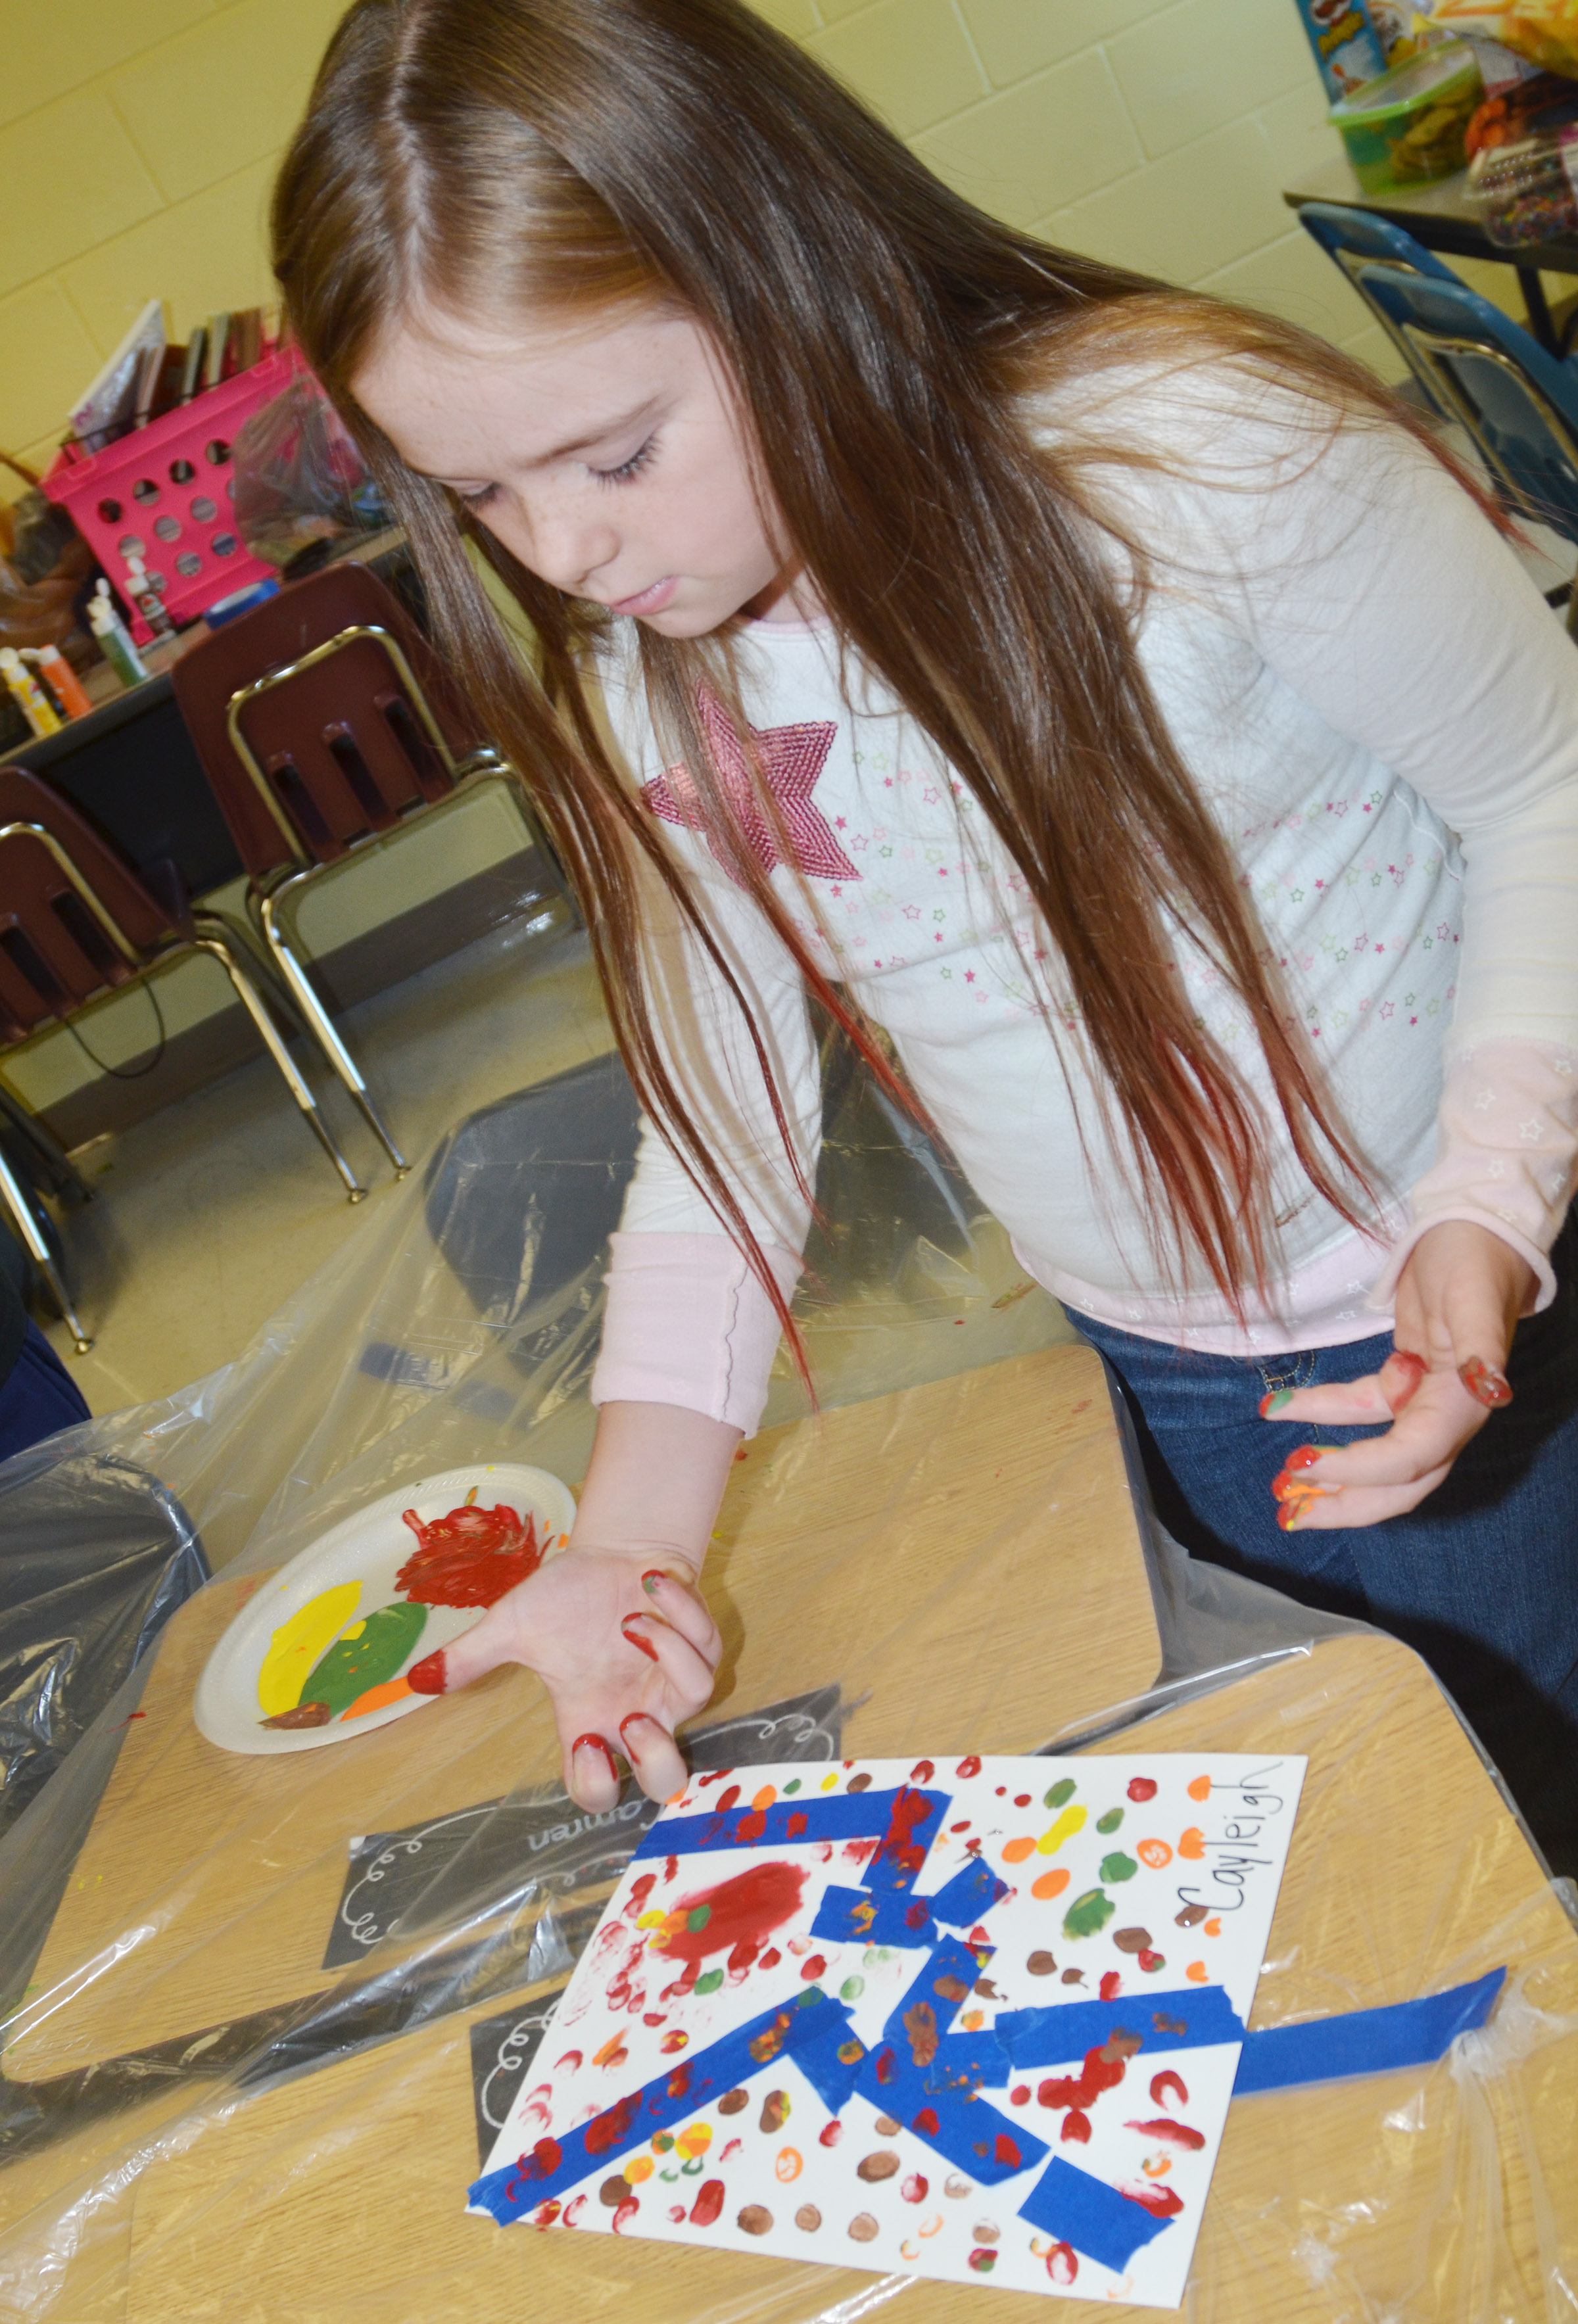 CES third-grader Cayleigh Underwood paints with her fingers.